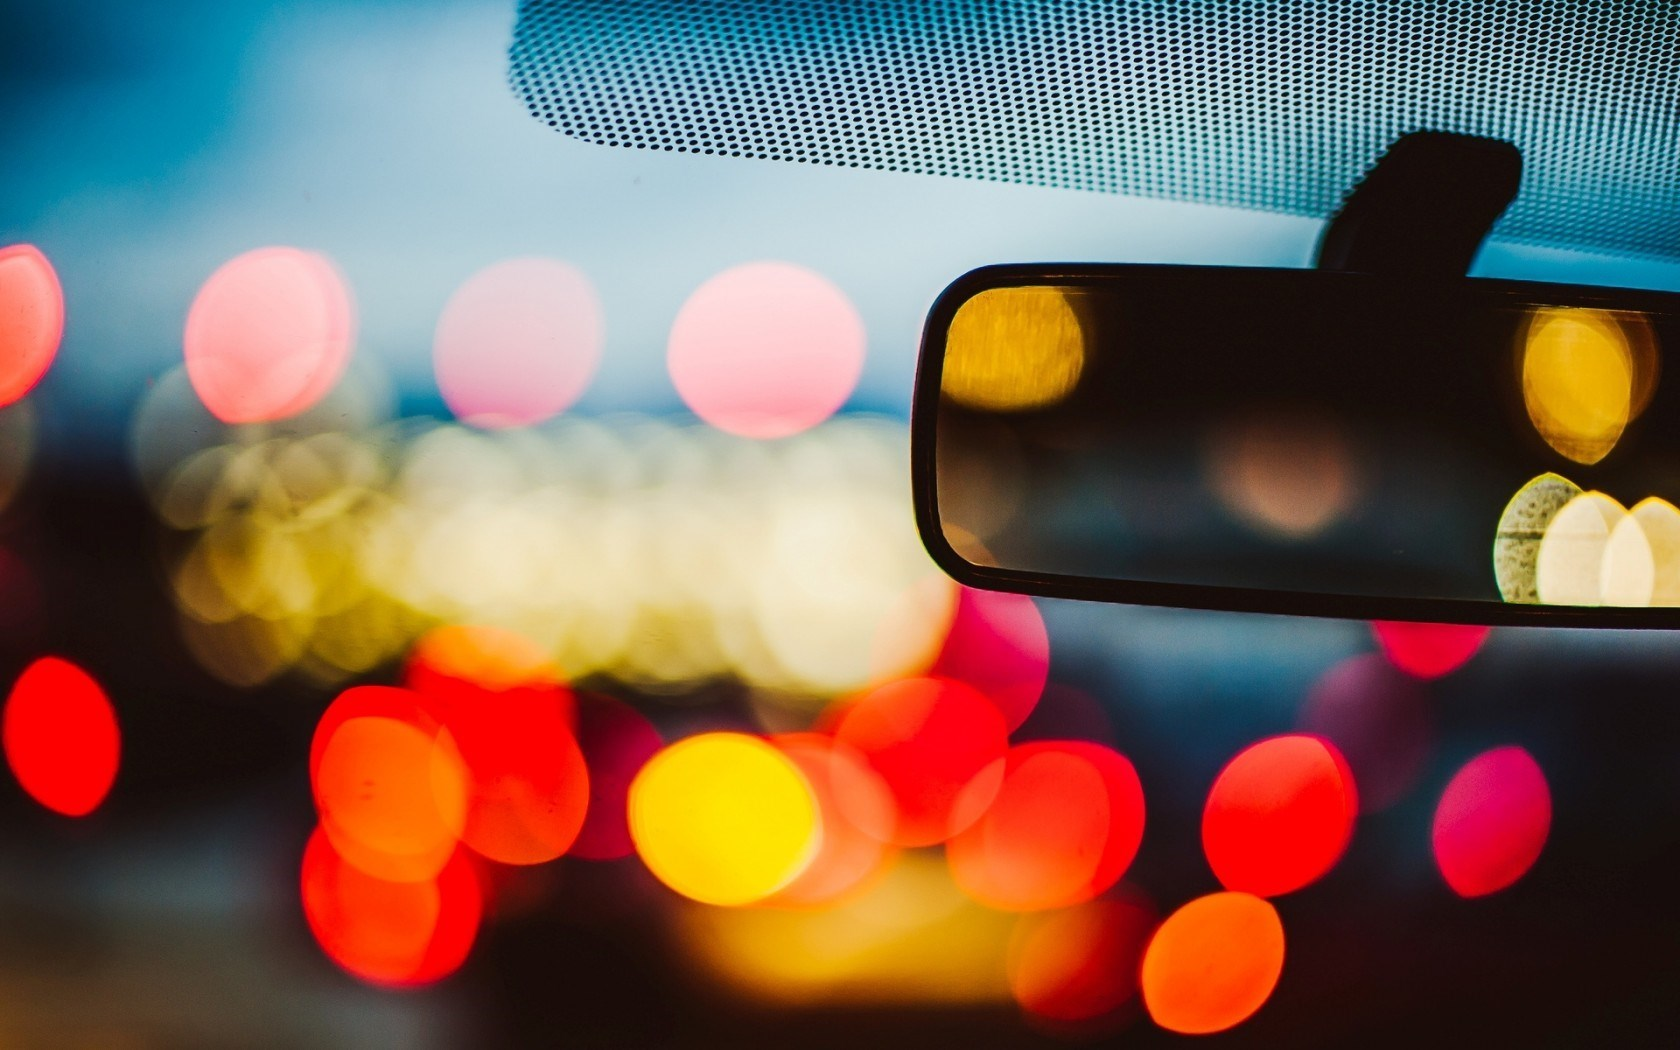 Car Mirror Bokeh Lights